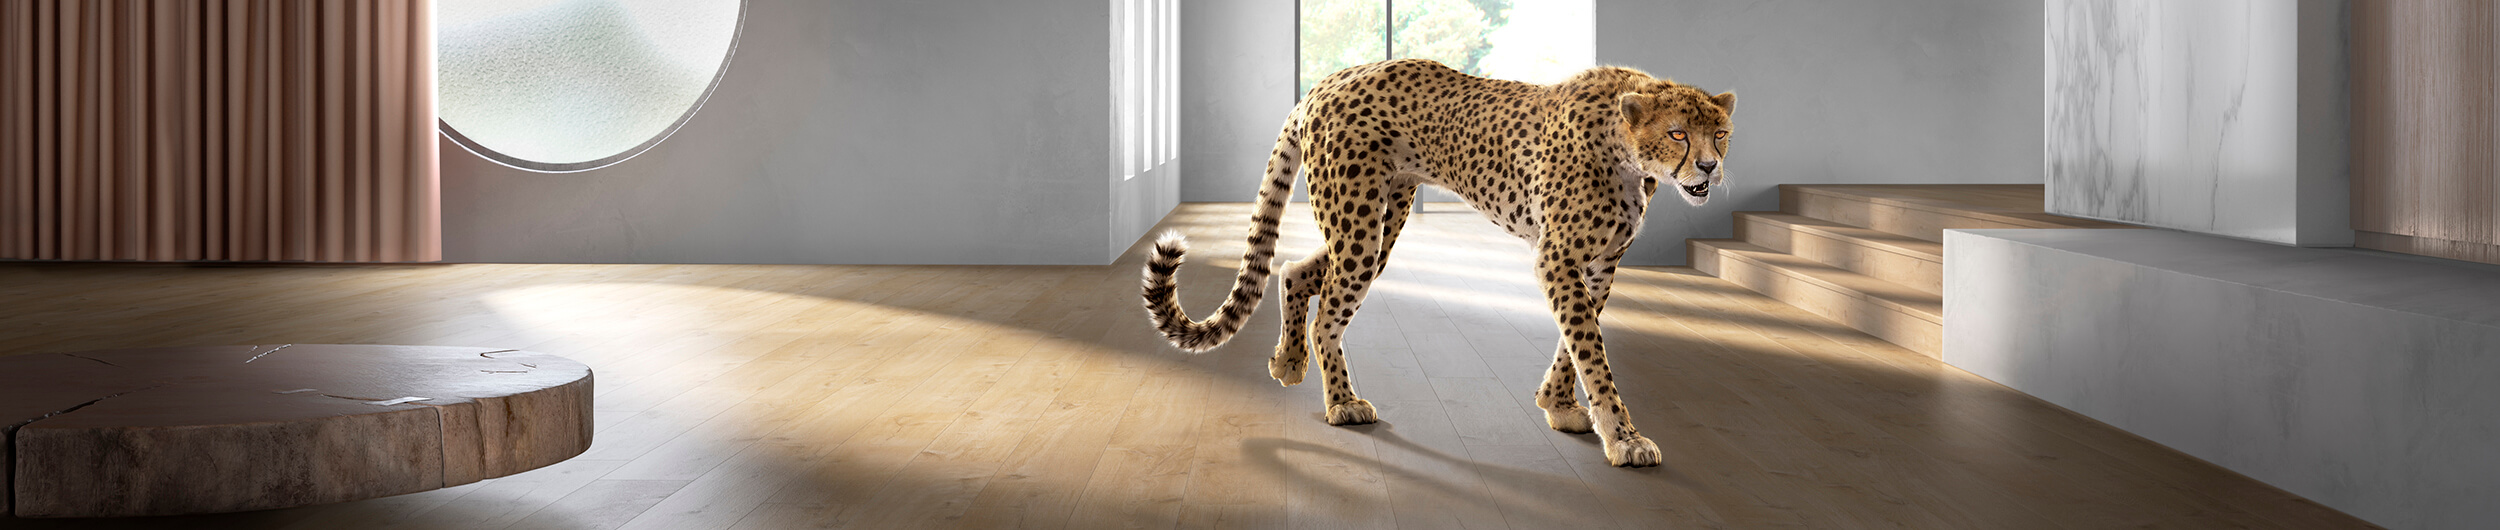 Walking_decor_cheetah_moved